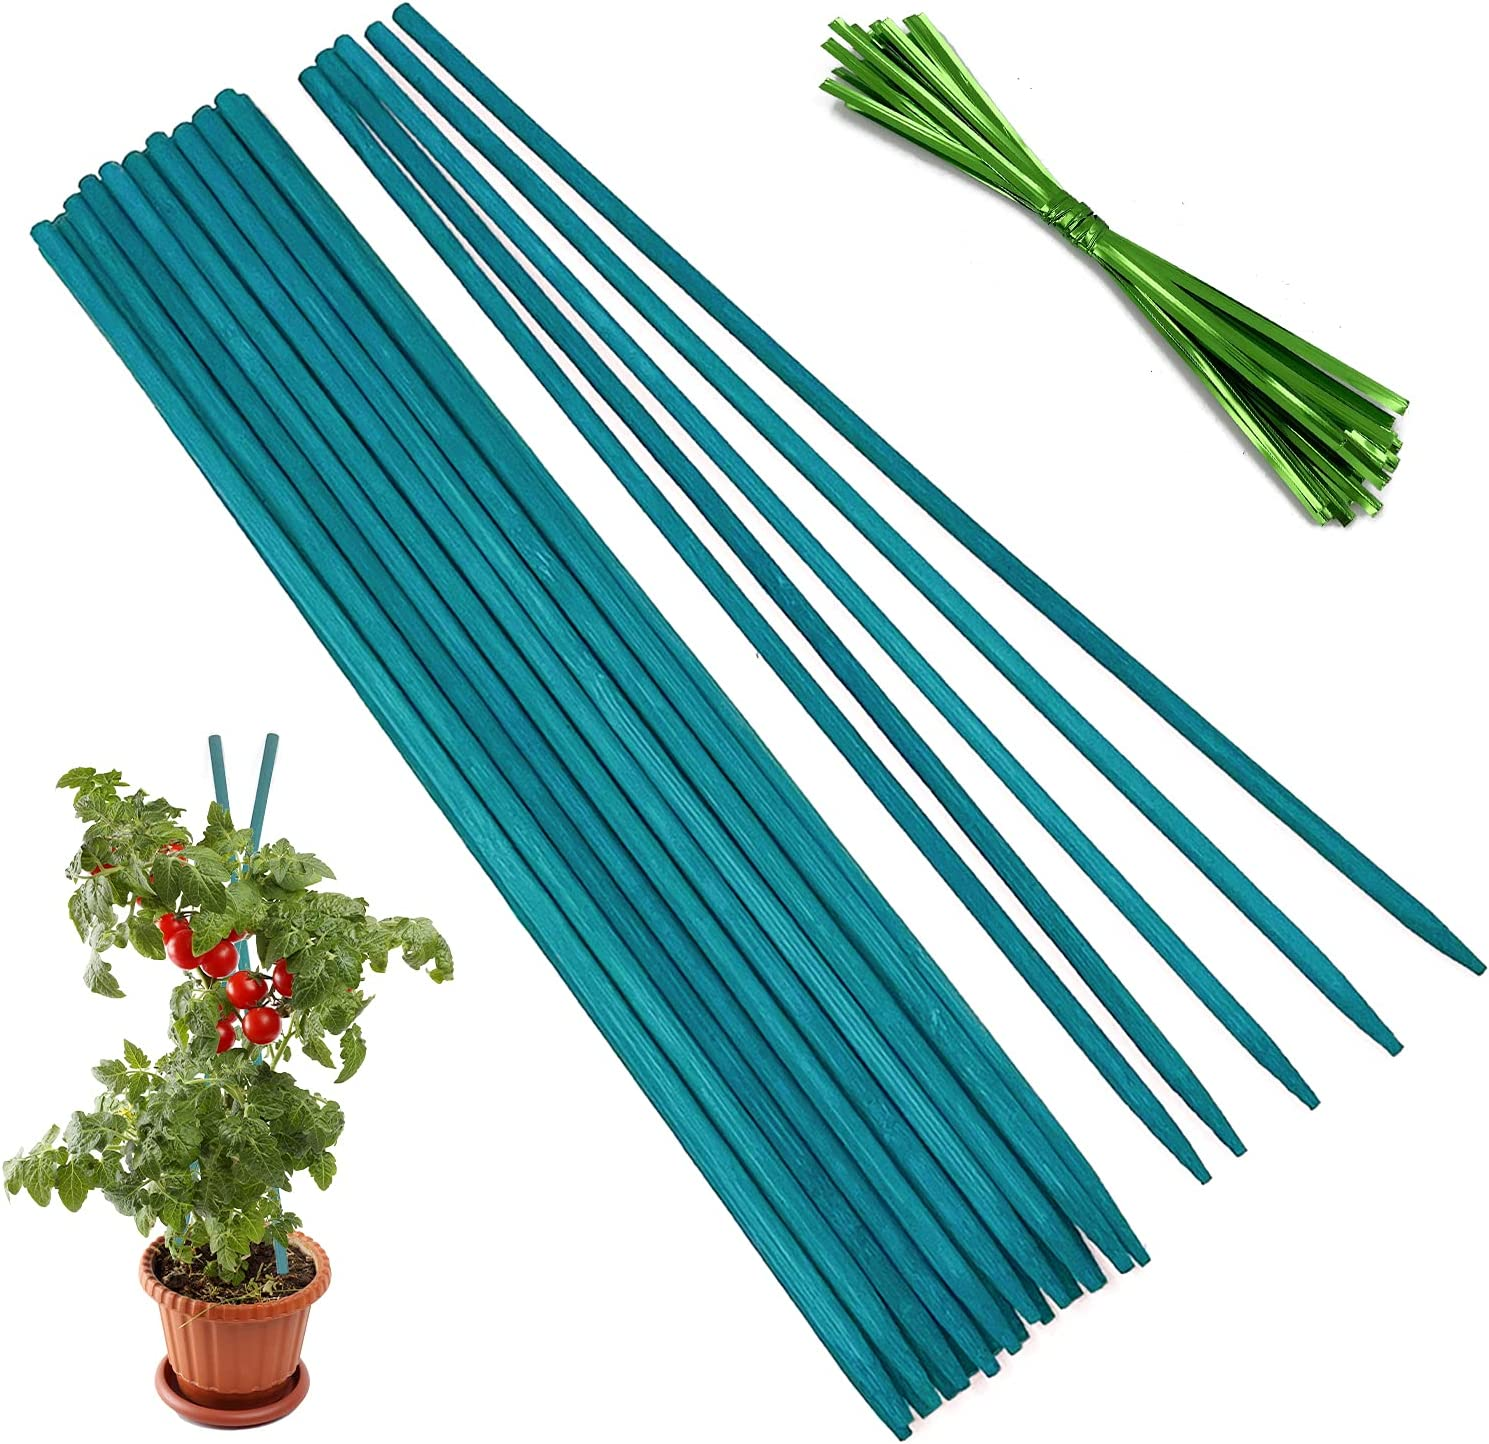 Garden Wood Stakes,HAINANSTRY Green Bamboo Plant Support Stakes,Flower/Orchid/Tomato Wooden Stakes for Gardening,Plant Stakes and Supports for Potted Plants - 25Pcs 18 Inches